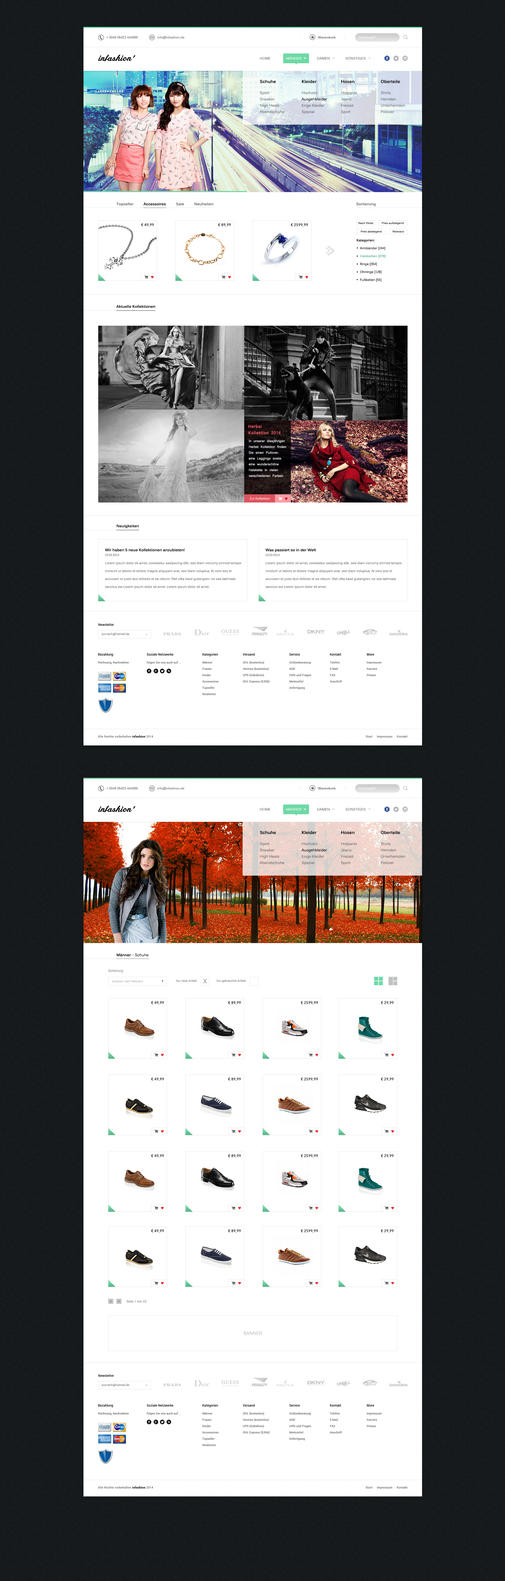 Free Shop Design by Freestyler92